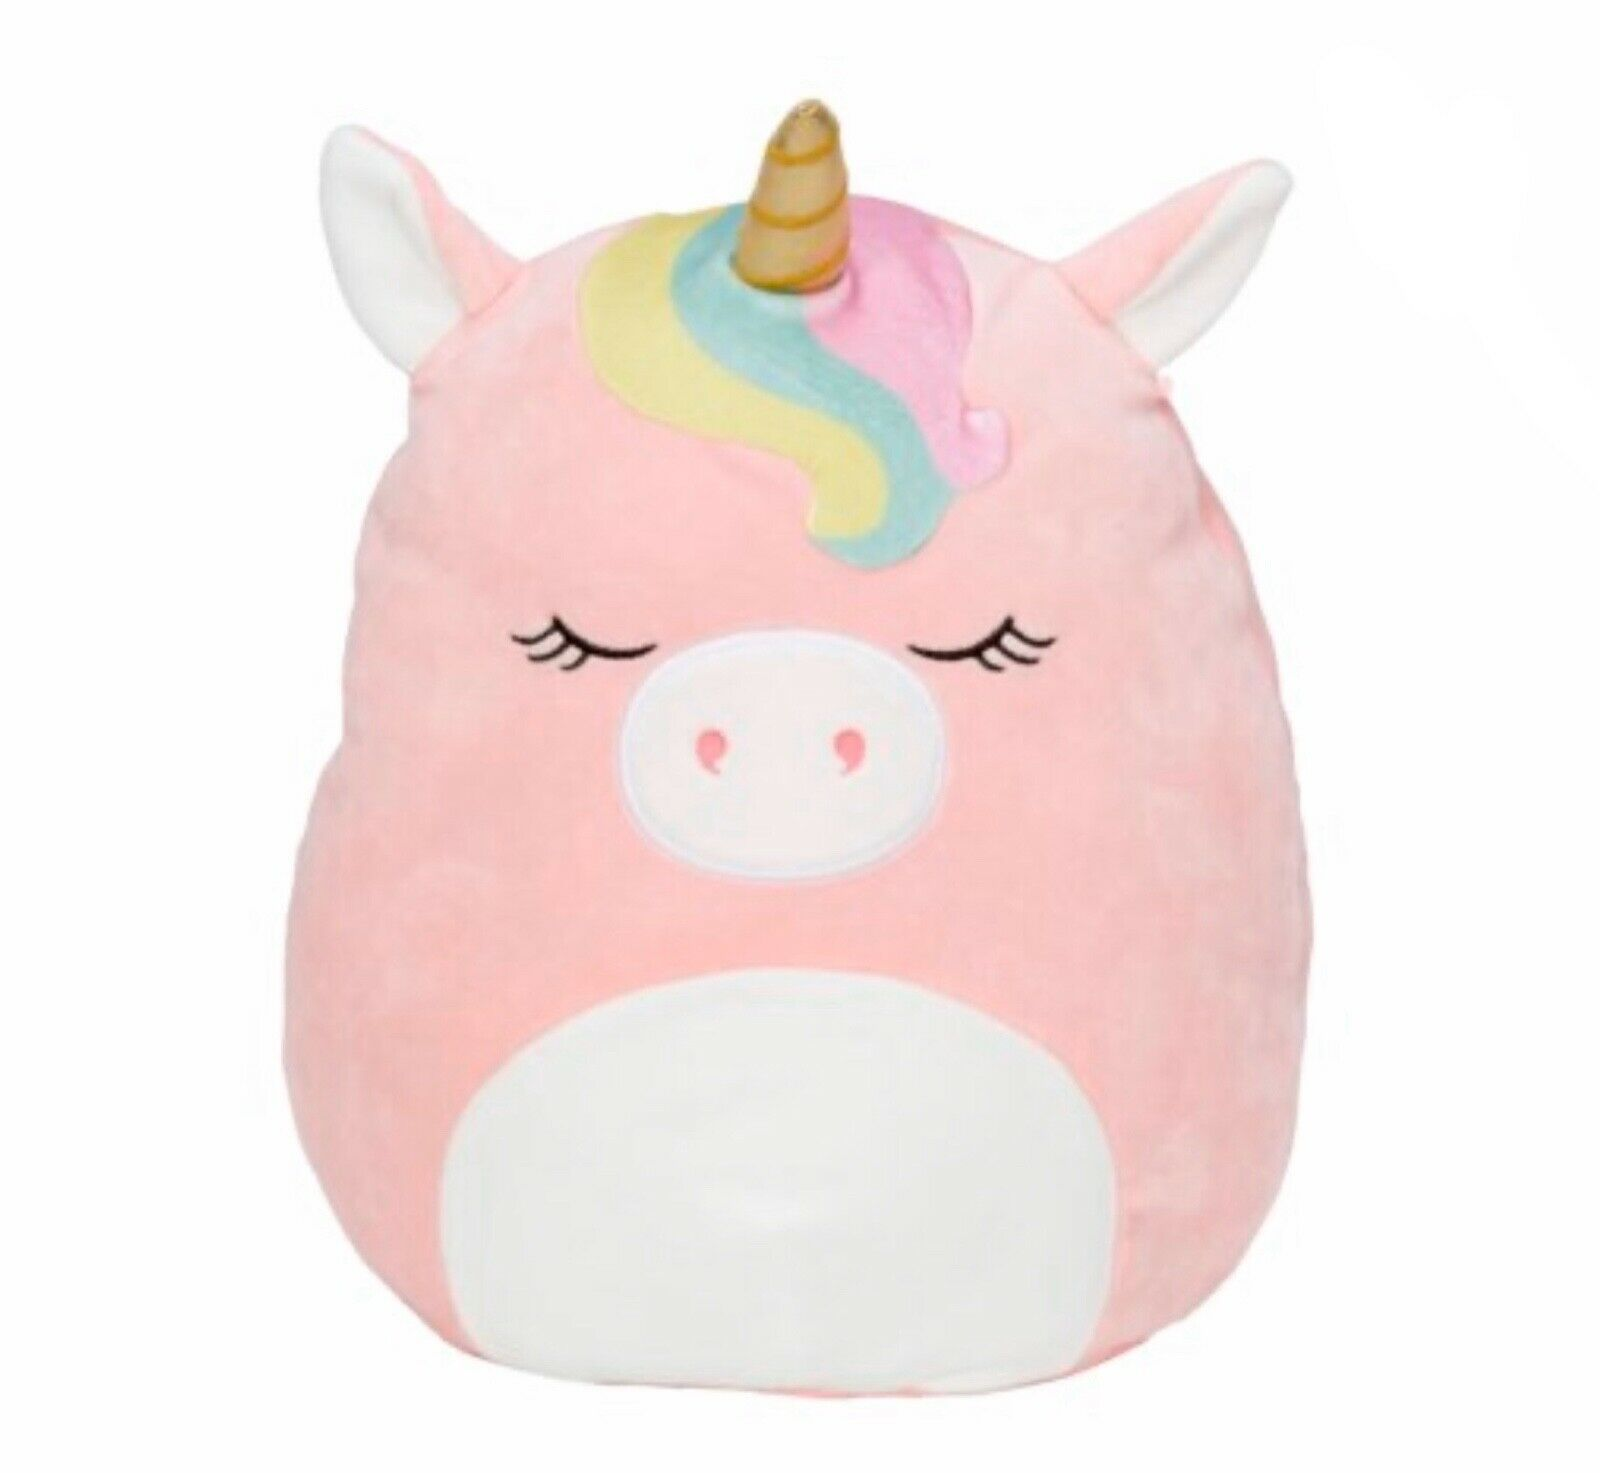 "Primary image for Squishmallows 8"" Llene the Unicorn  Super Soft Plush Toy Teddy Bear"